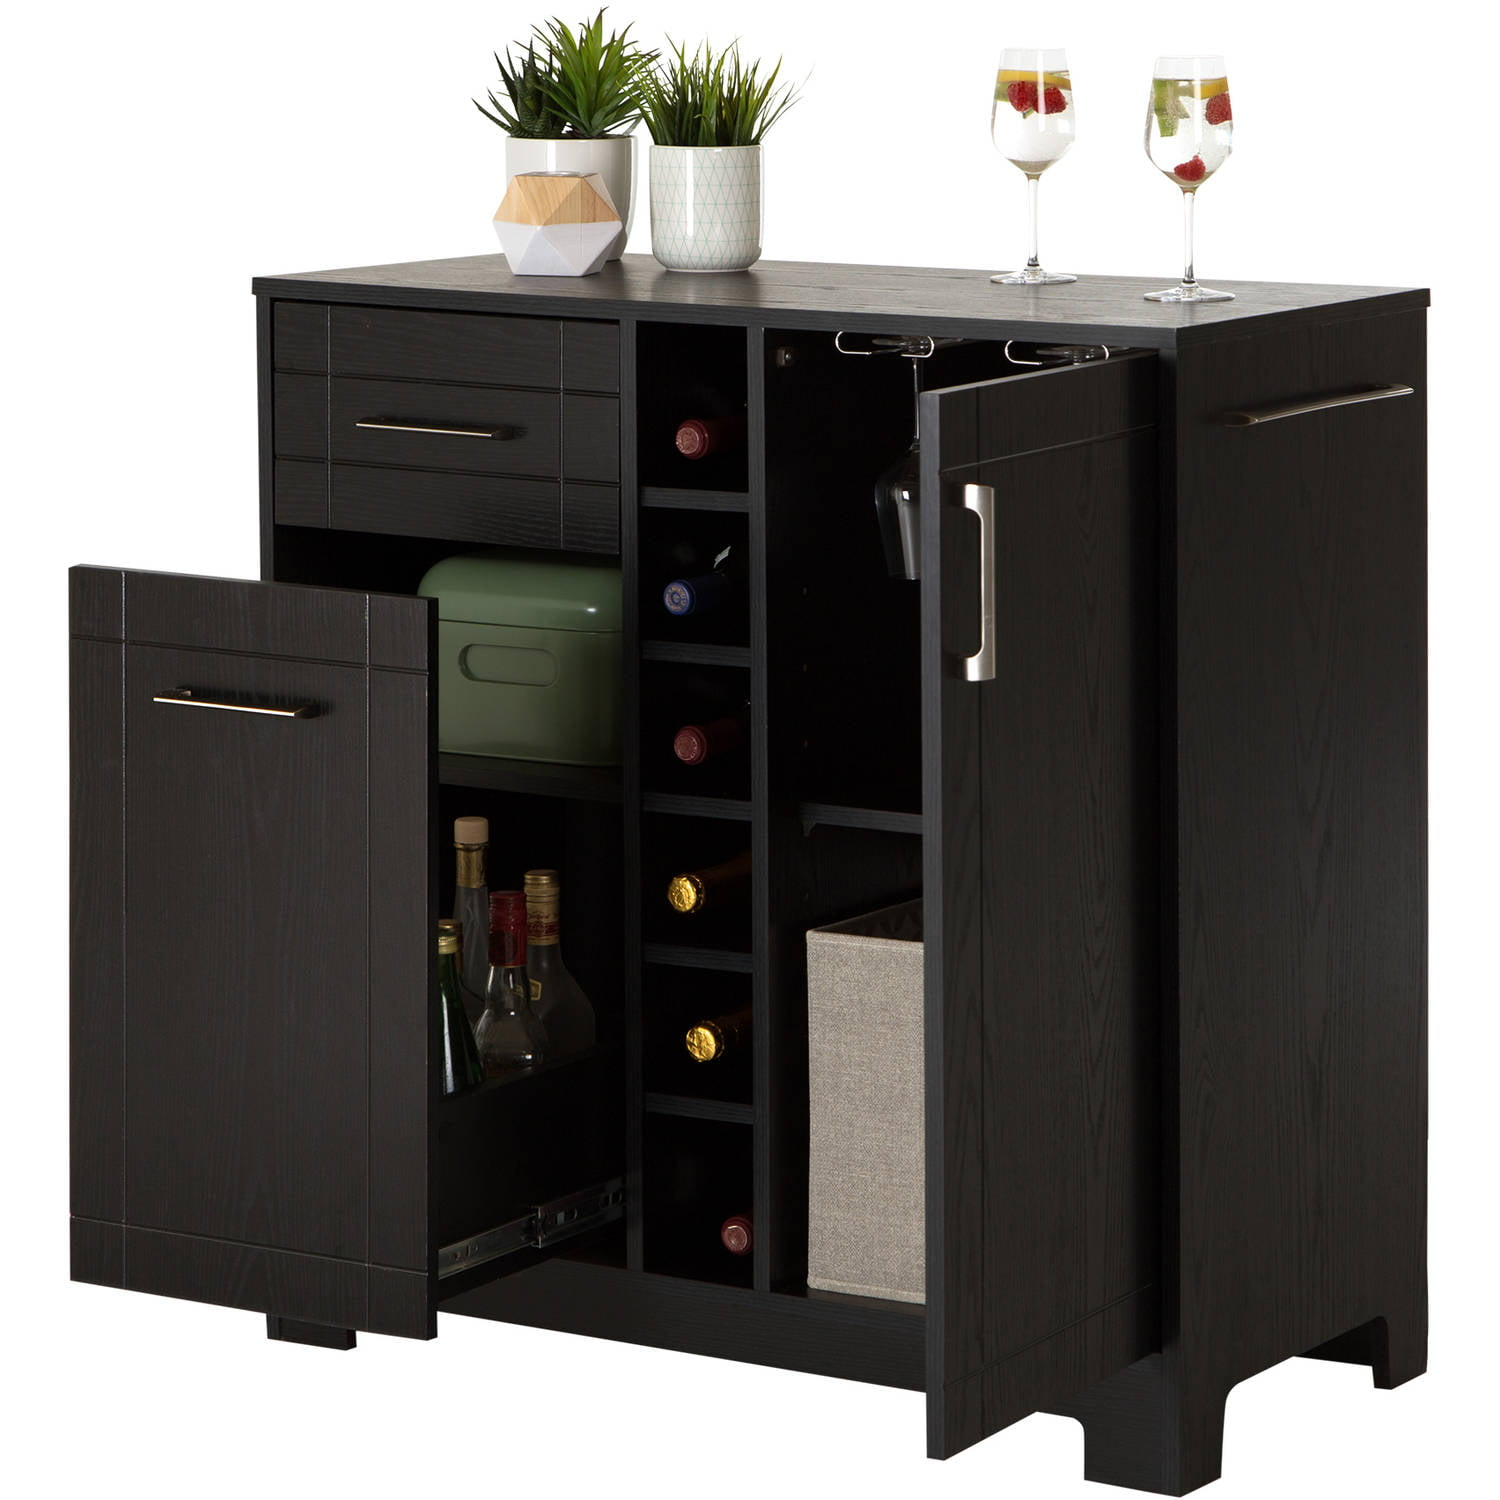 Black Home Bar Furniture: Home Mini Bar Liquor Cabinet Server Glass Storage Wine